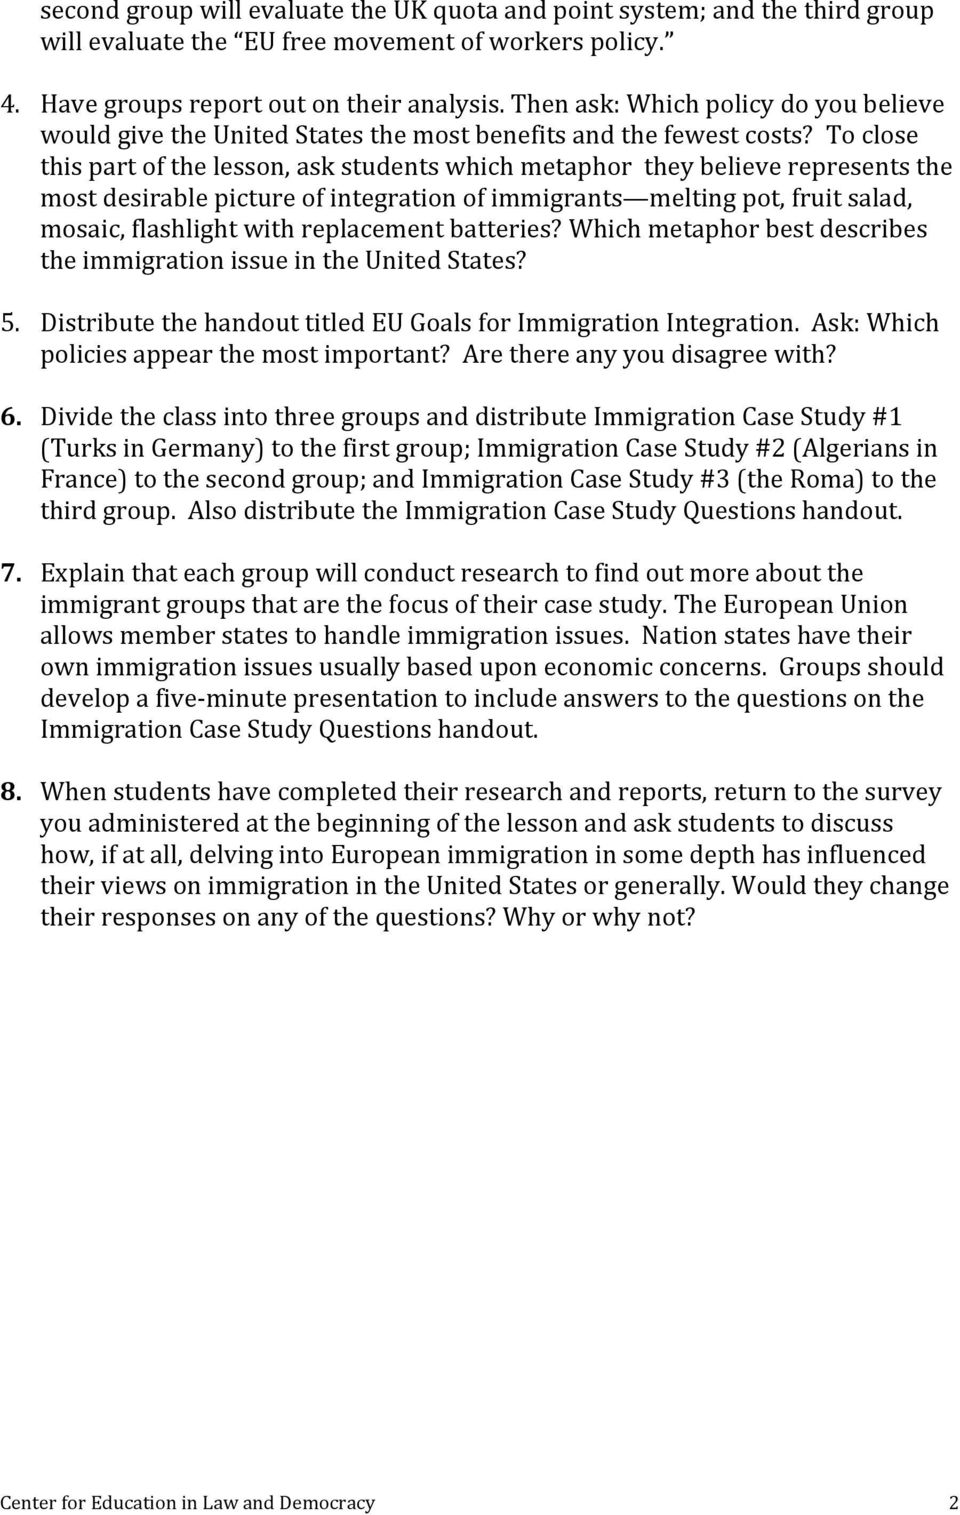 hight resolution of EU Immigration and Integration - PDF Free Download